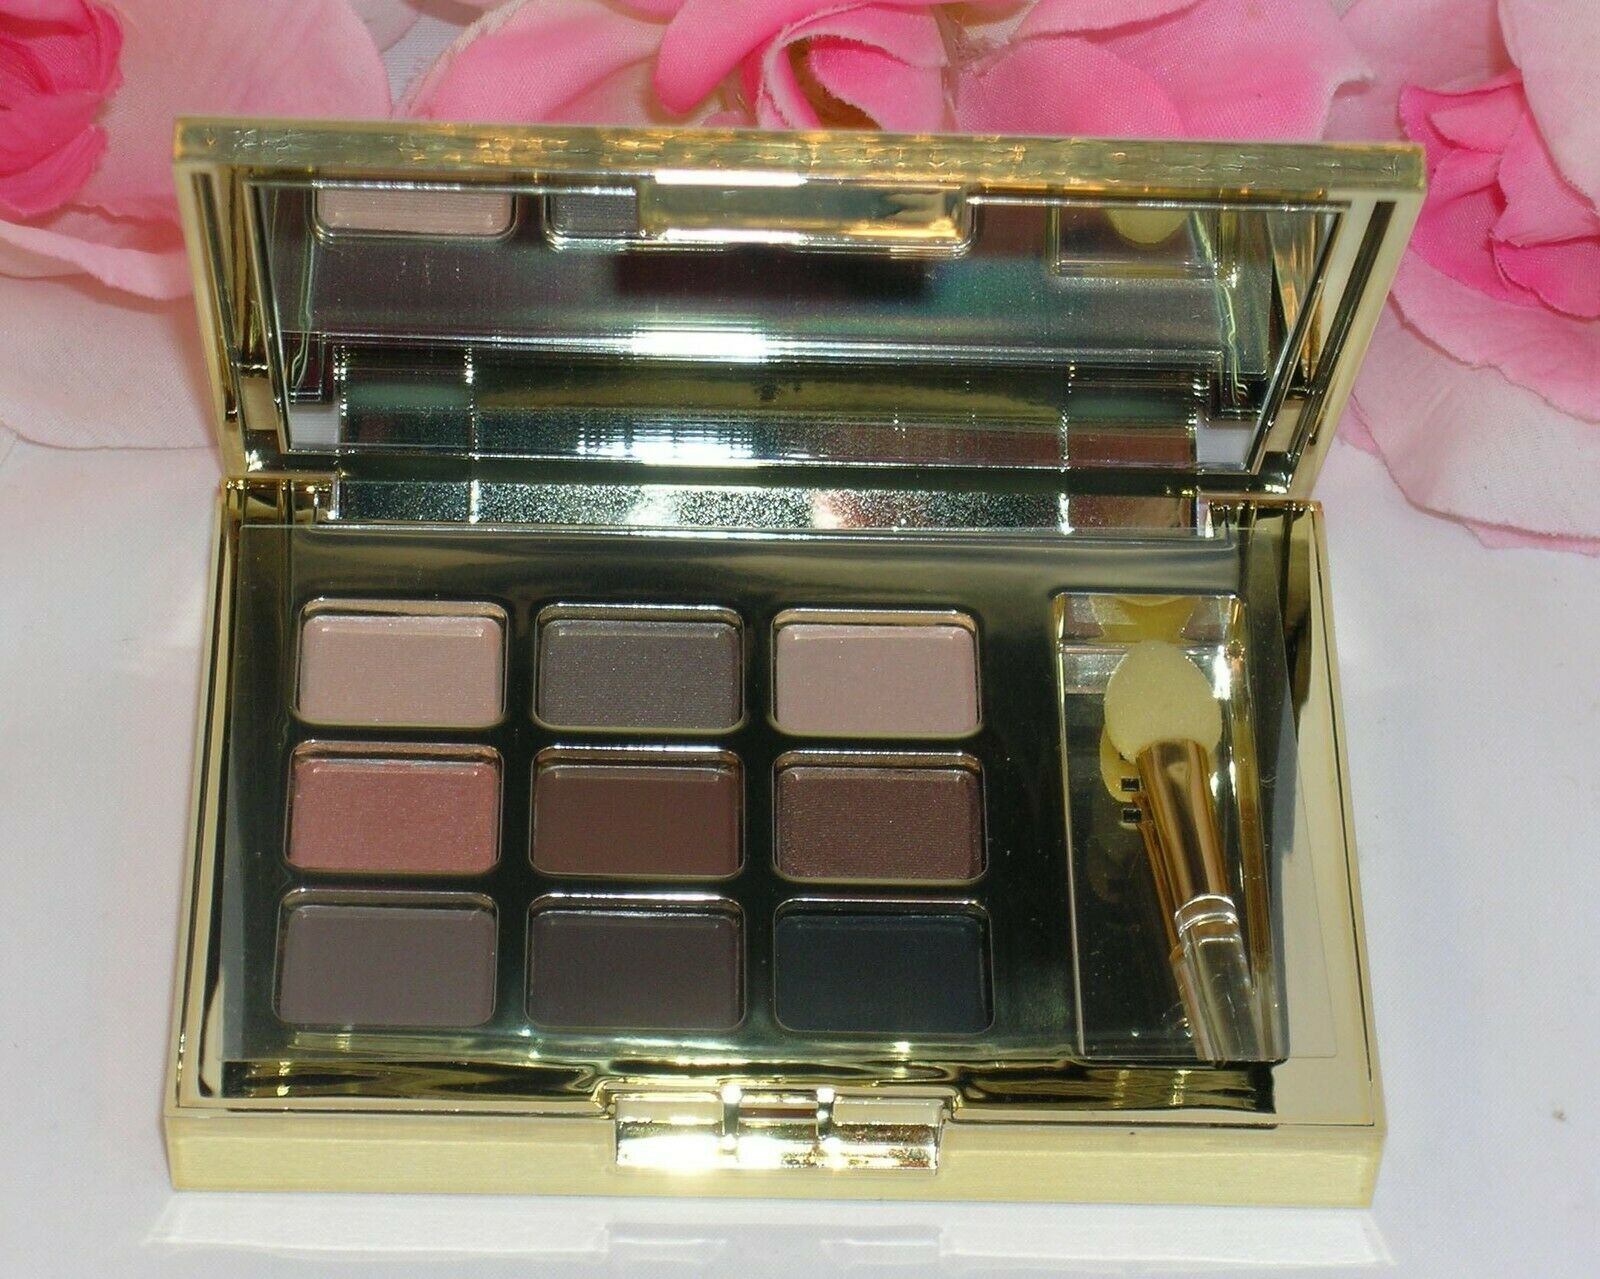 Primary image for New Estee Lauder Pure Color Eye Shadow 9 Shades Satin Shimmer Matte Compact &App